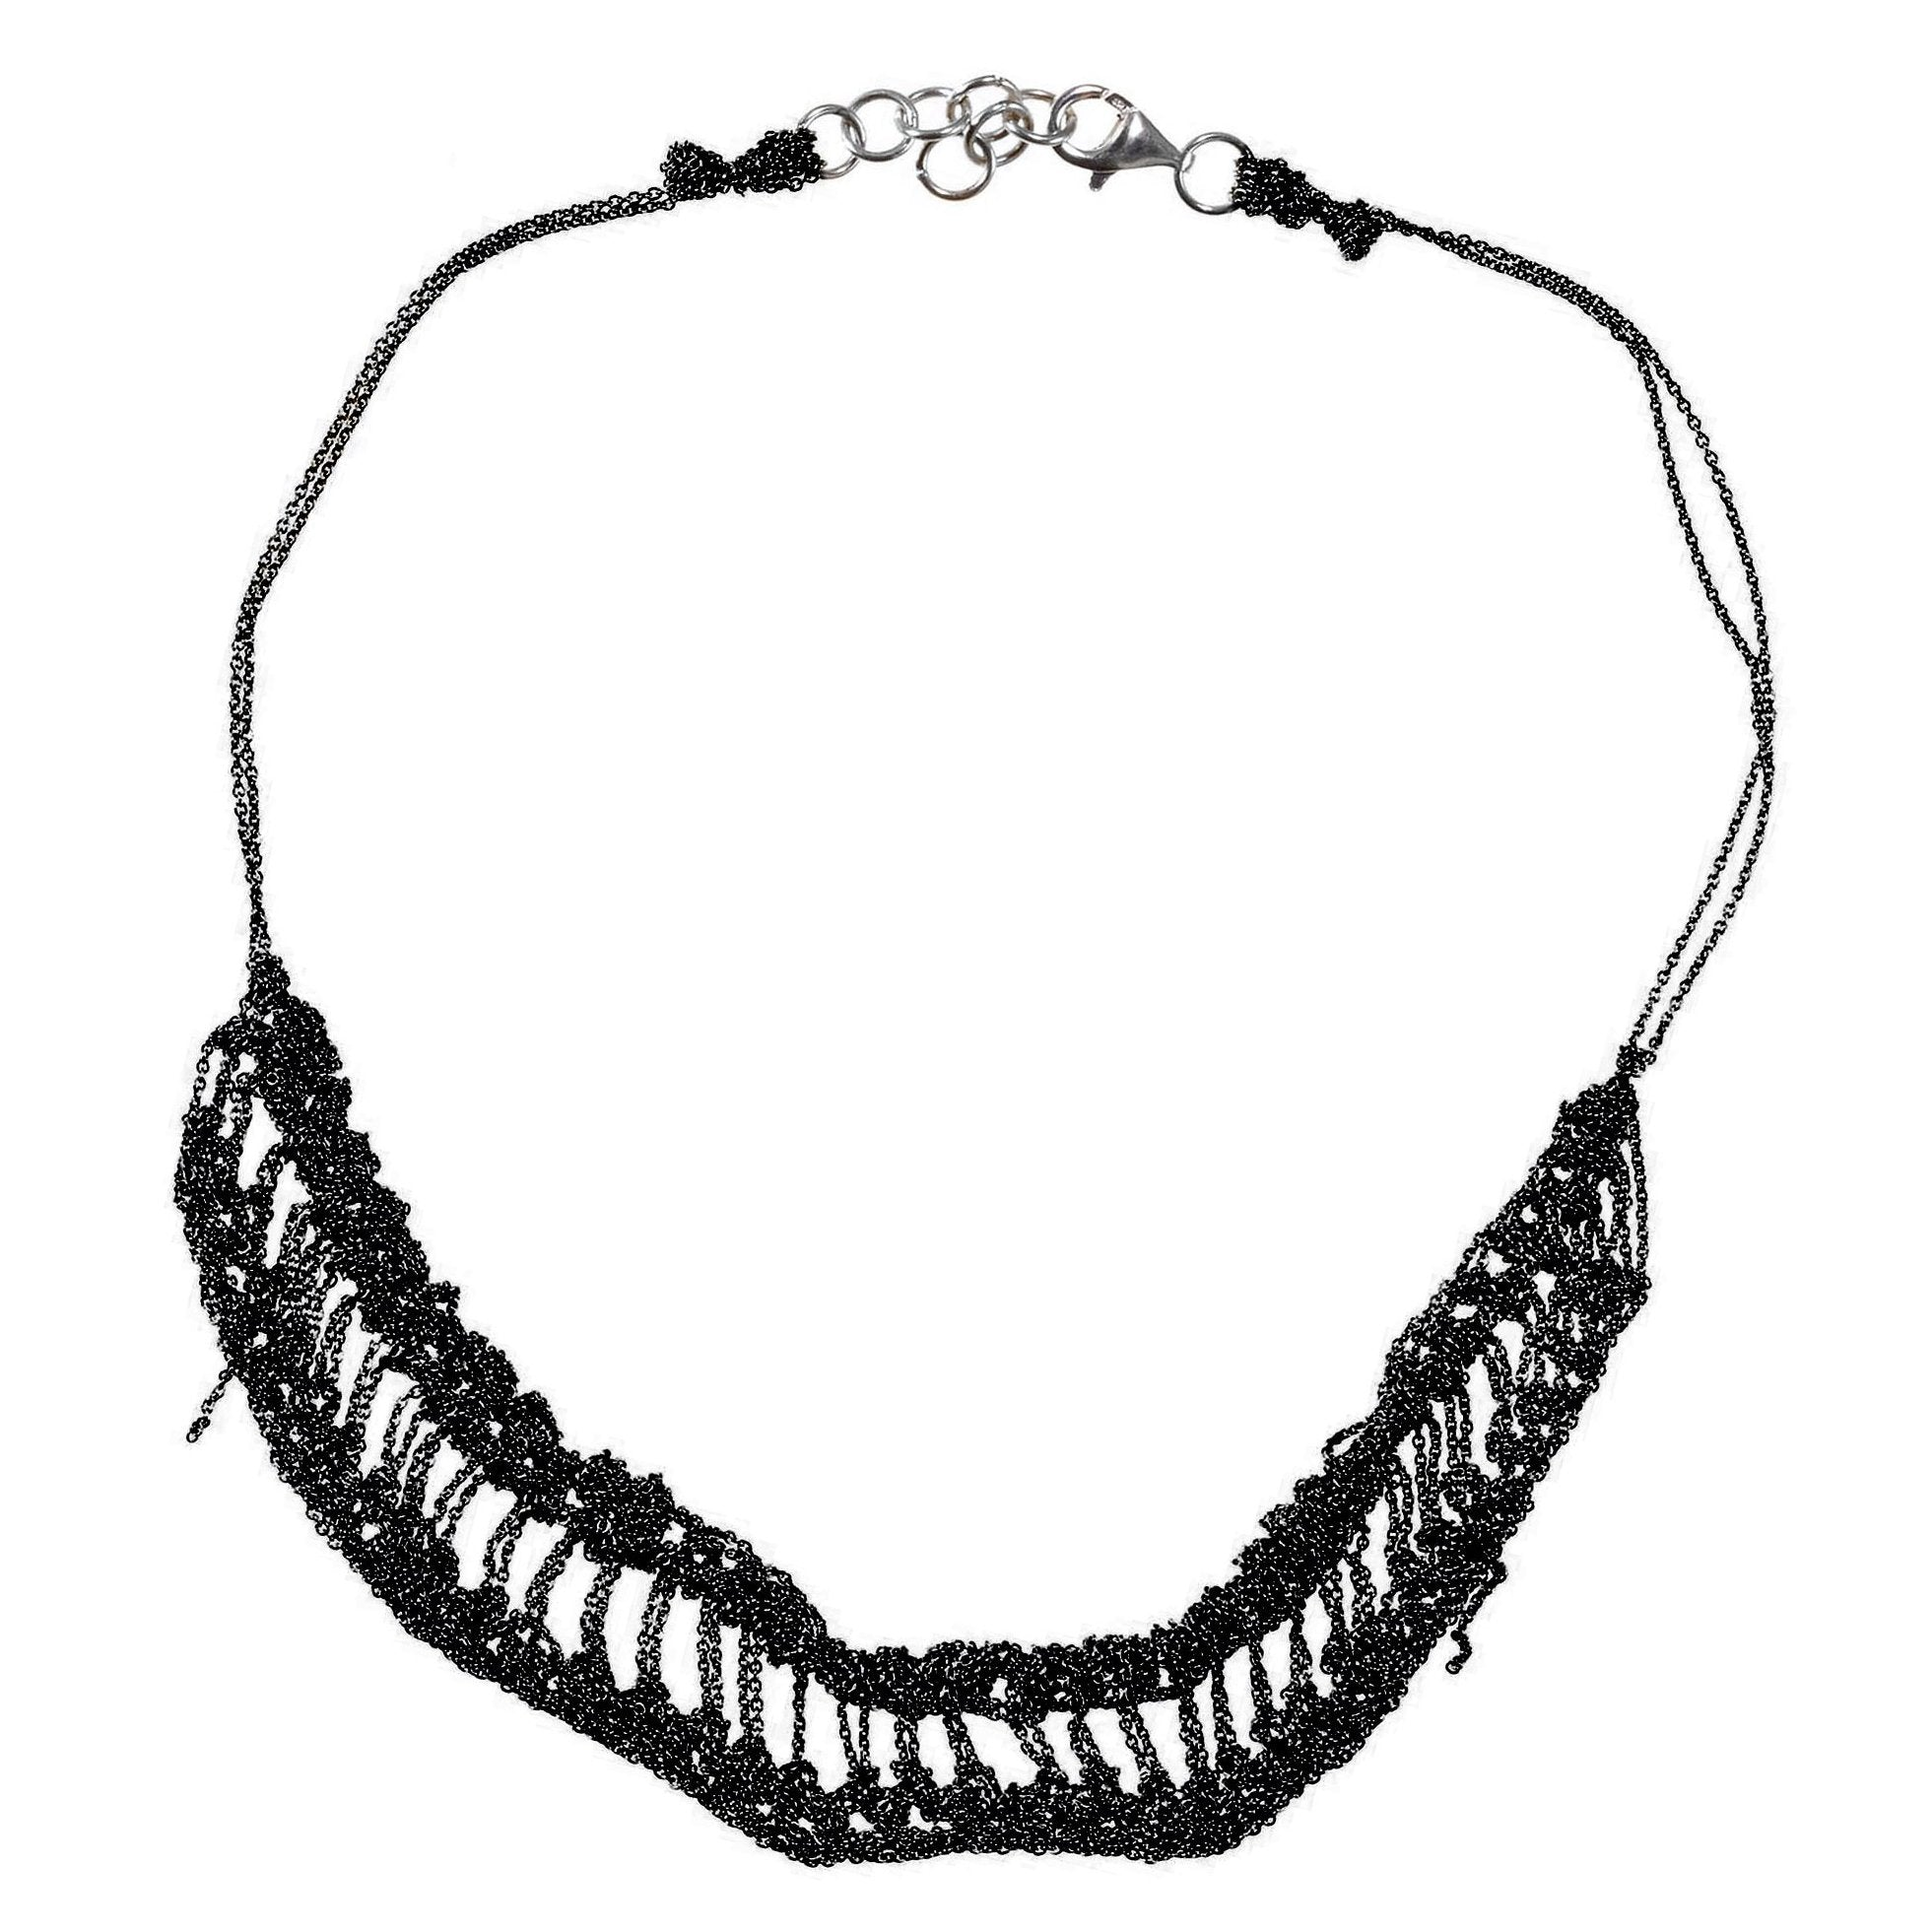 Slink Necklace in Charcoal